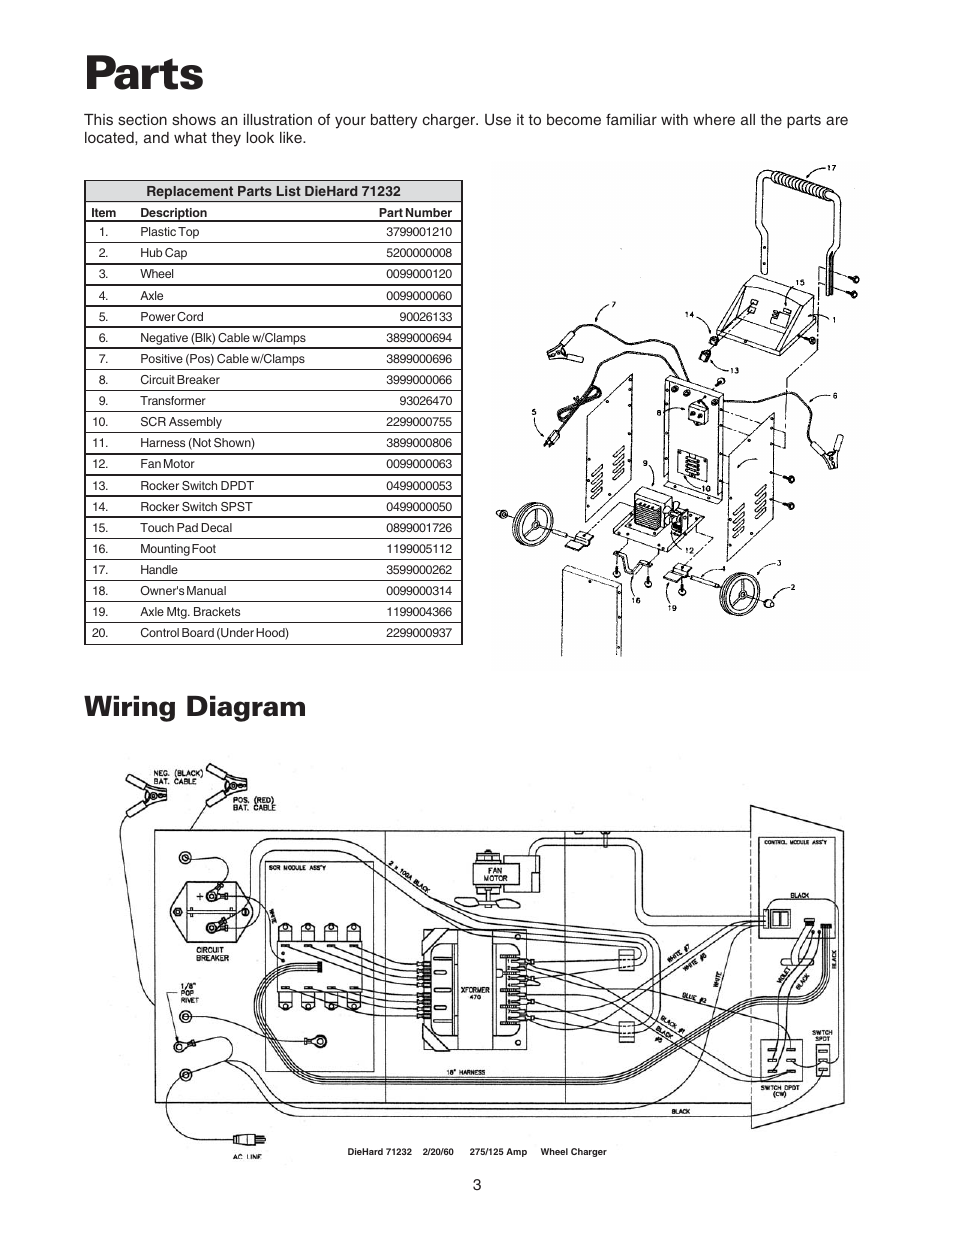 Parts, Wiring diagram | Sears 200.71232 User Manual | Page 5 / 16Manuals Directory